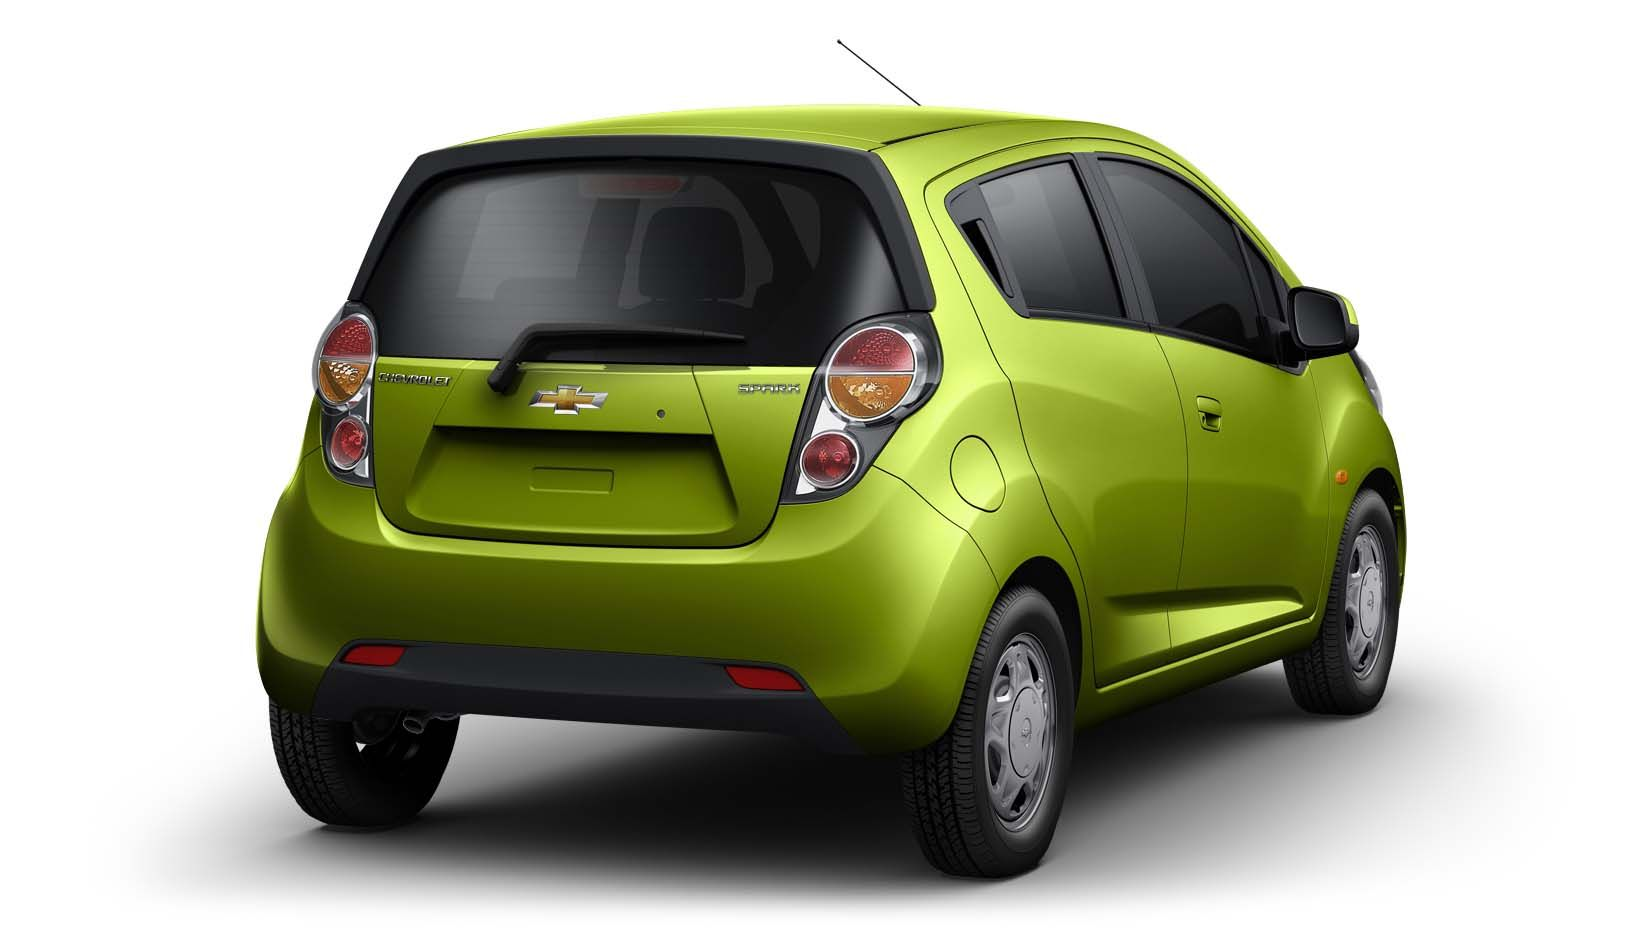 2013 chevy spark for sale fitzpatrick auto center in storm lake ia